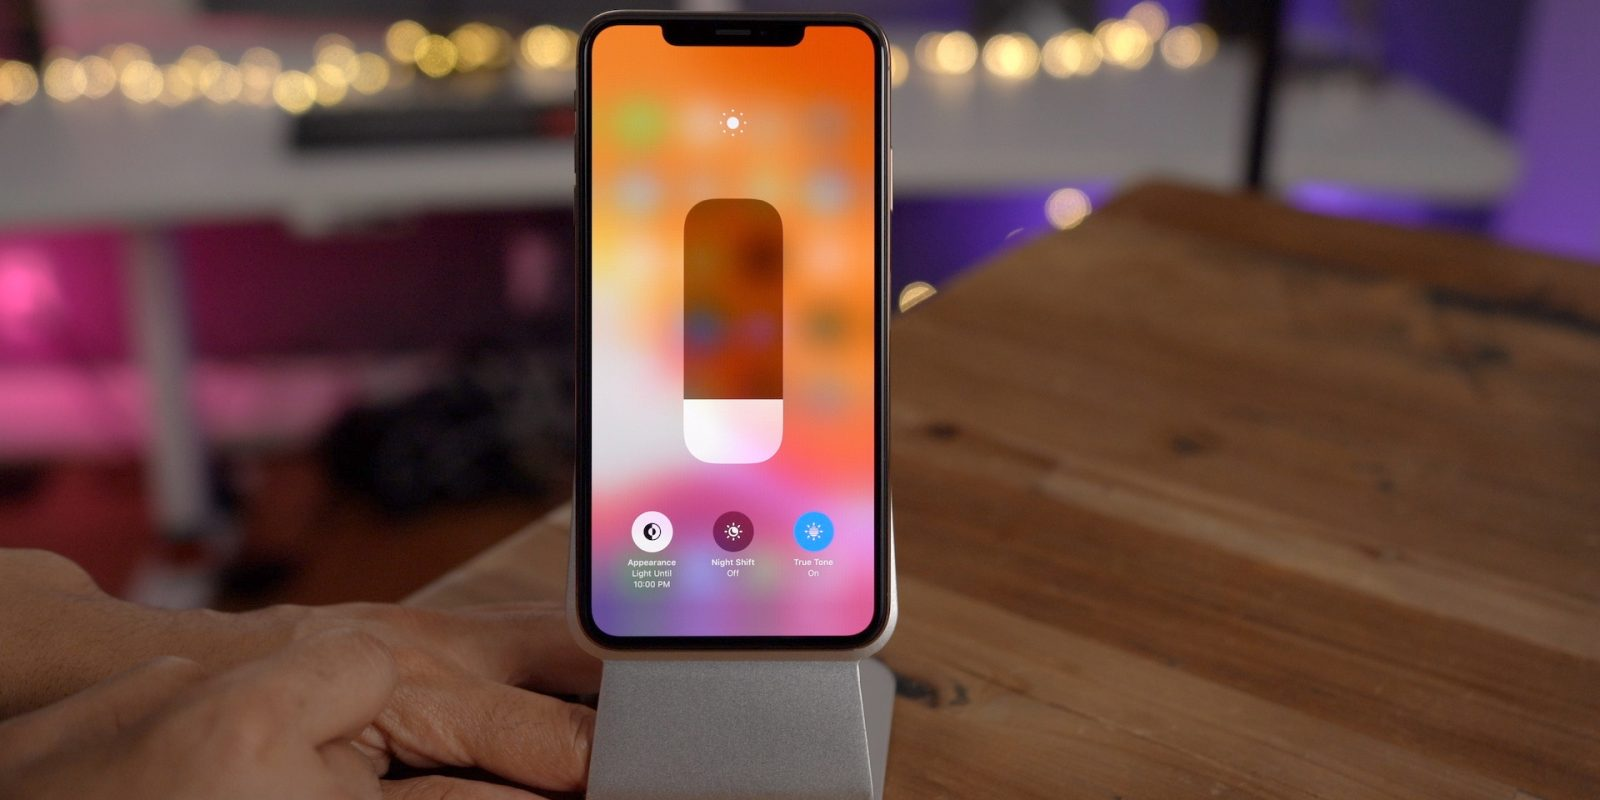 iOS 13 1 changes: Everything new in today's update - 9to5Mac